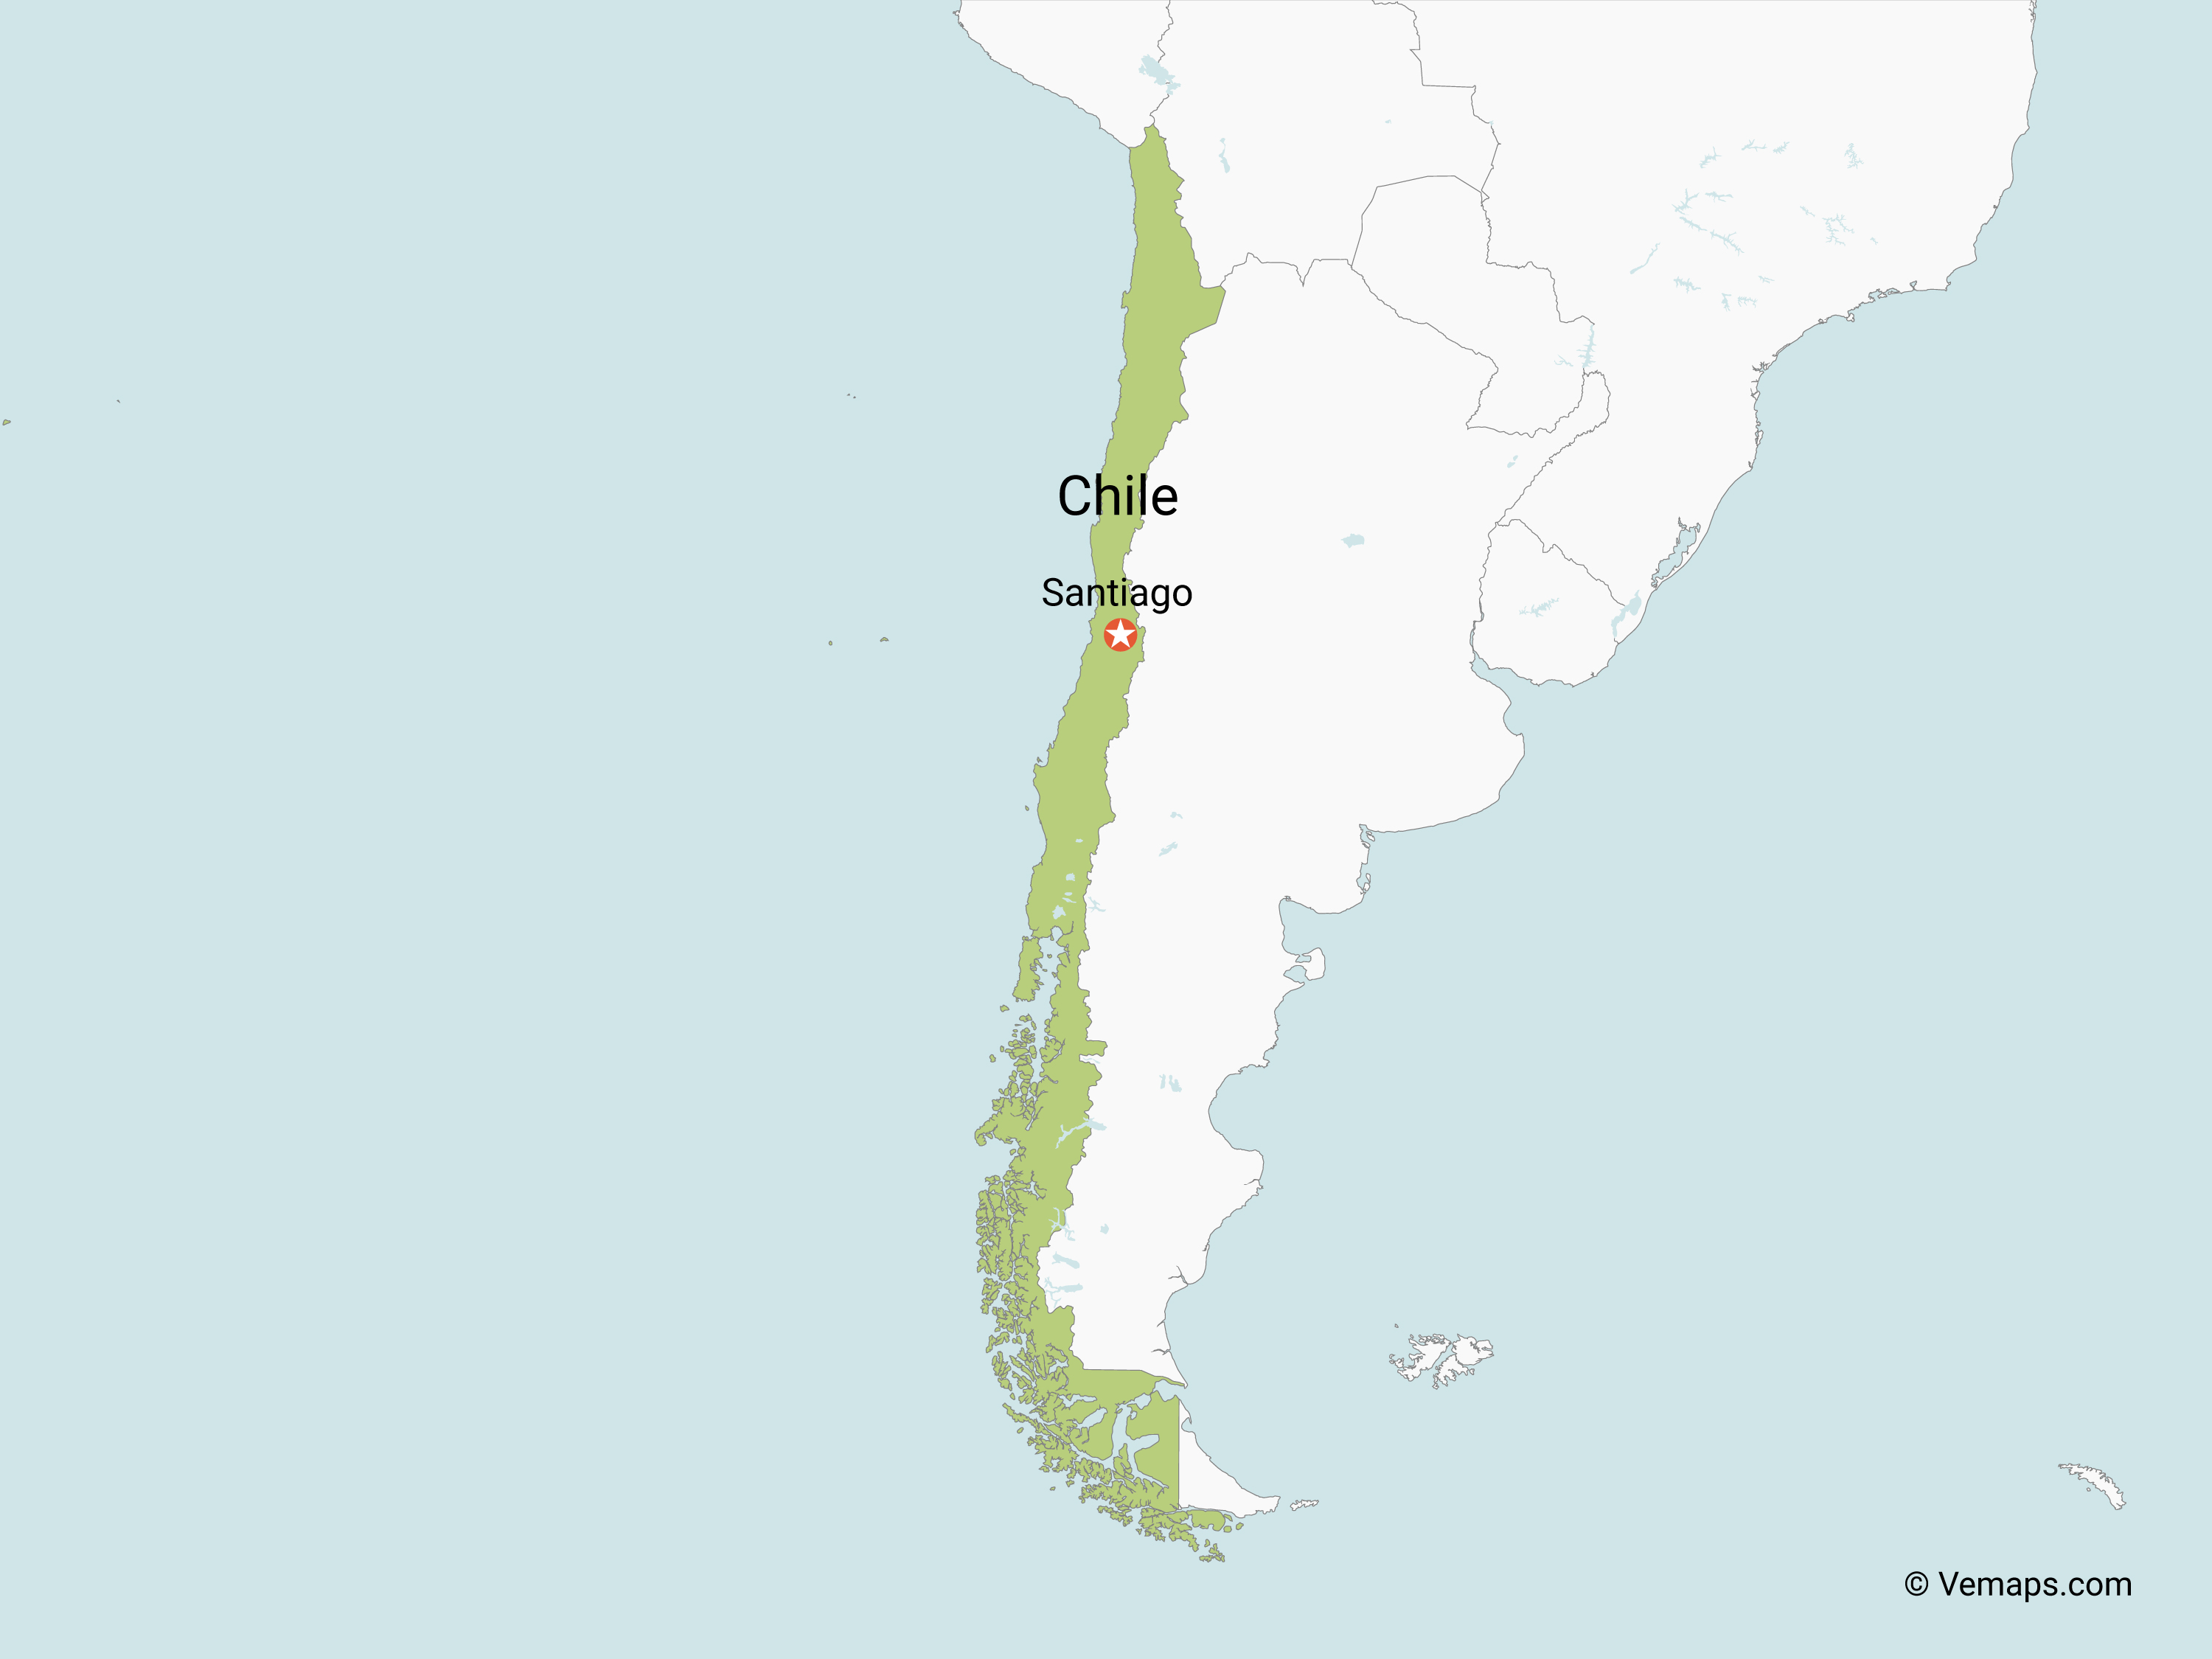 a map of chile Map Of Chile With Neighbouring Countries Free Vector Maps a map of chile